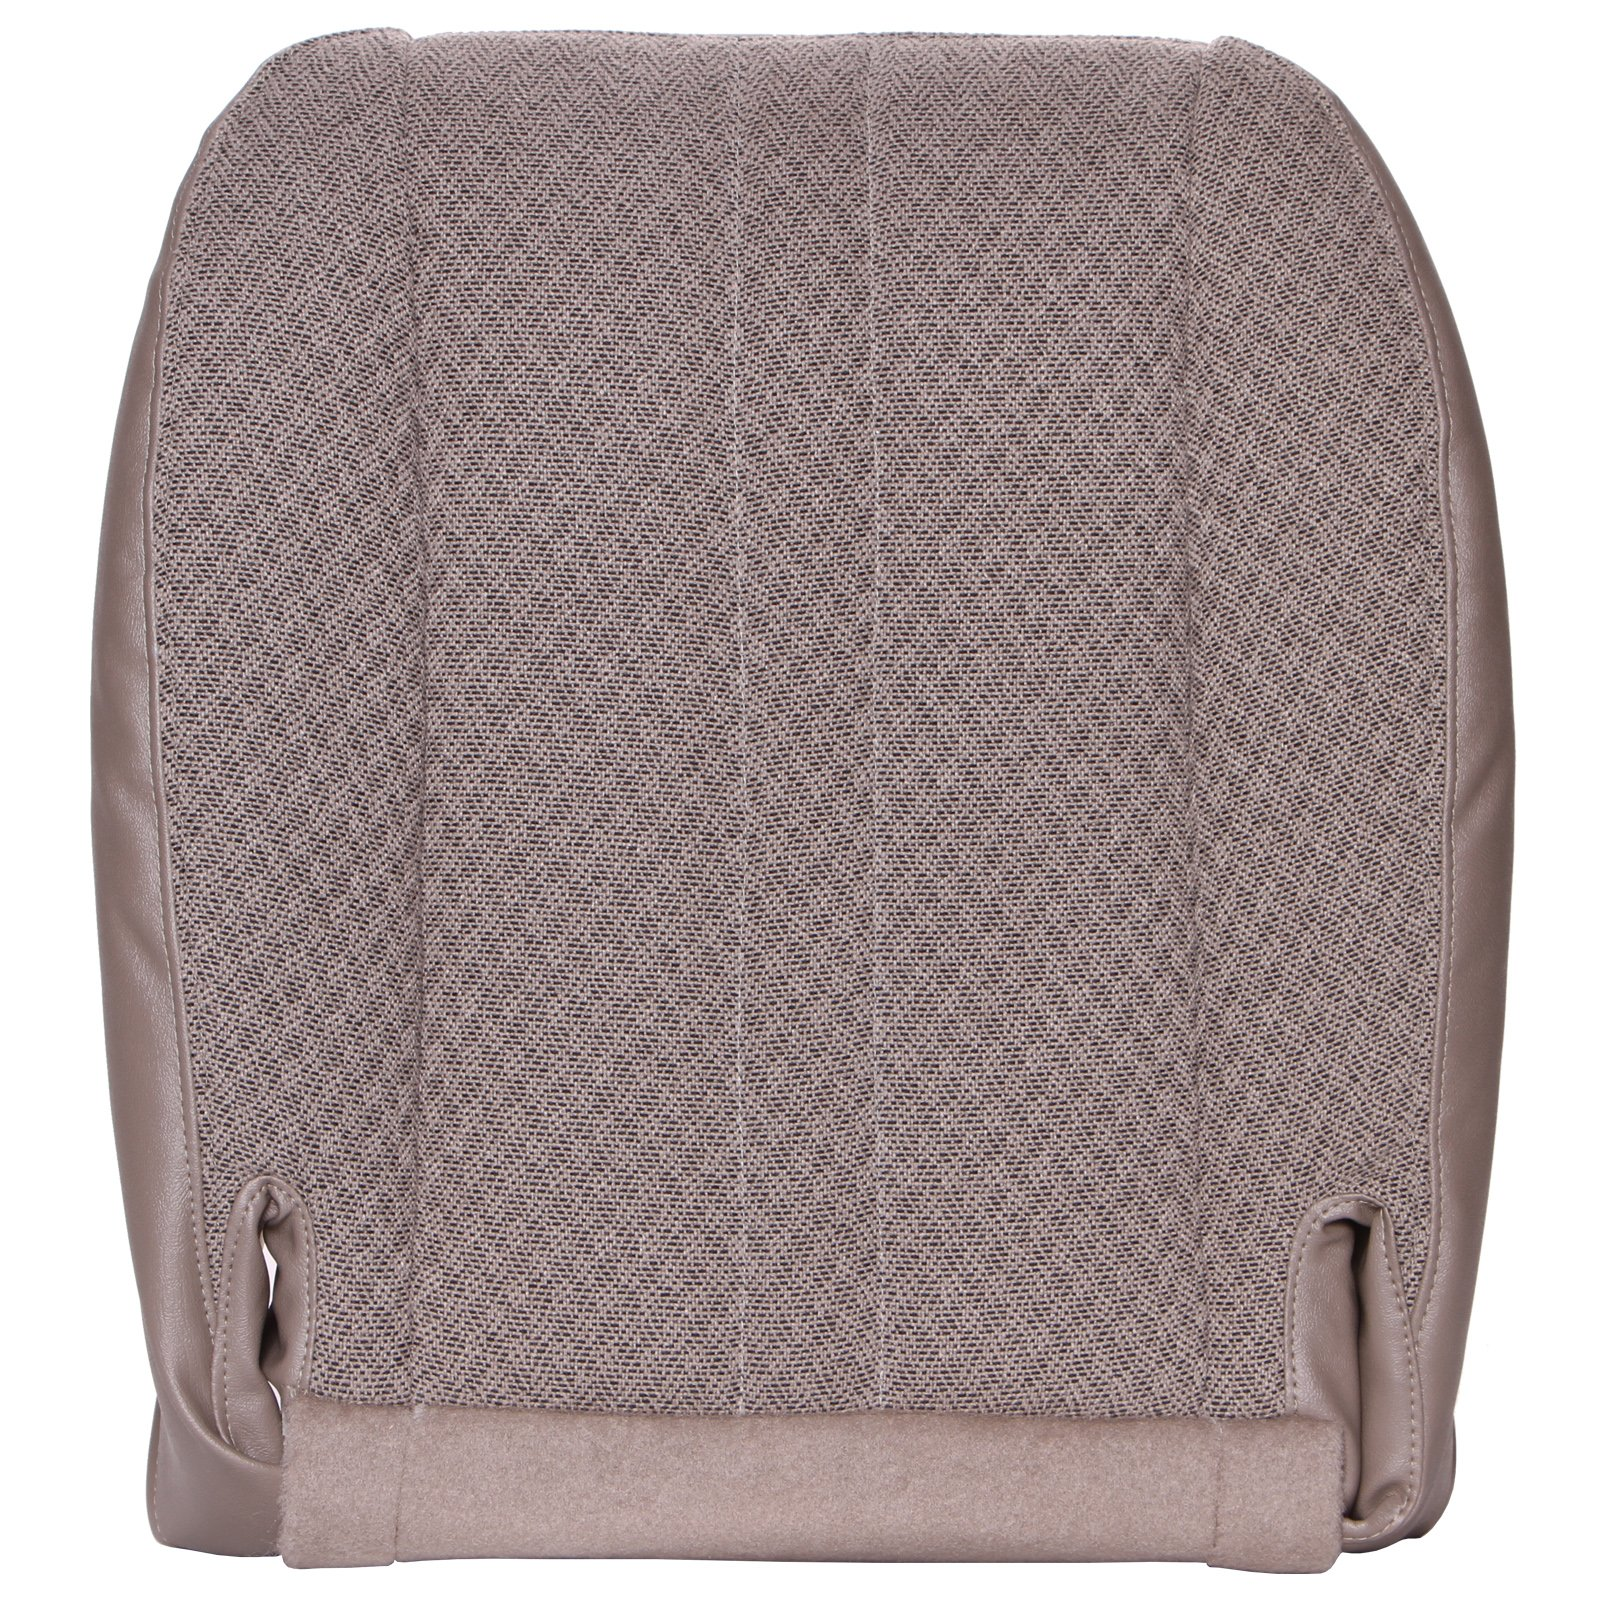 The Seat Shop Work Van Driver or Passenger Bottom Replacement Seat Cover - Medium Neutral (Tan) Cloth (Compatible with 2003-2014 Chevrolet Express and GMC Savana)